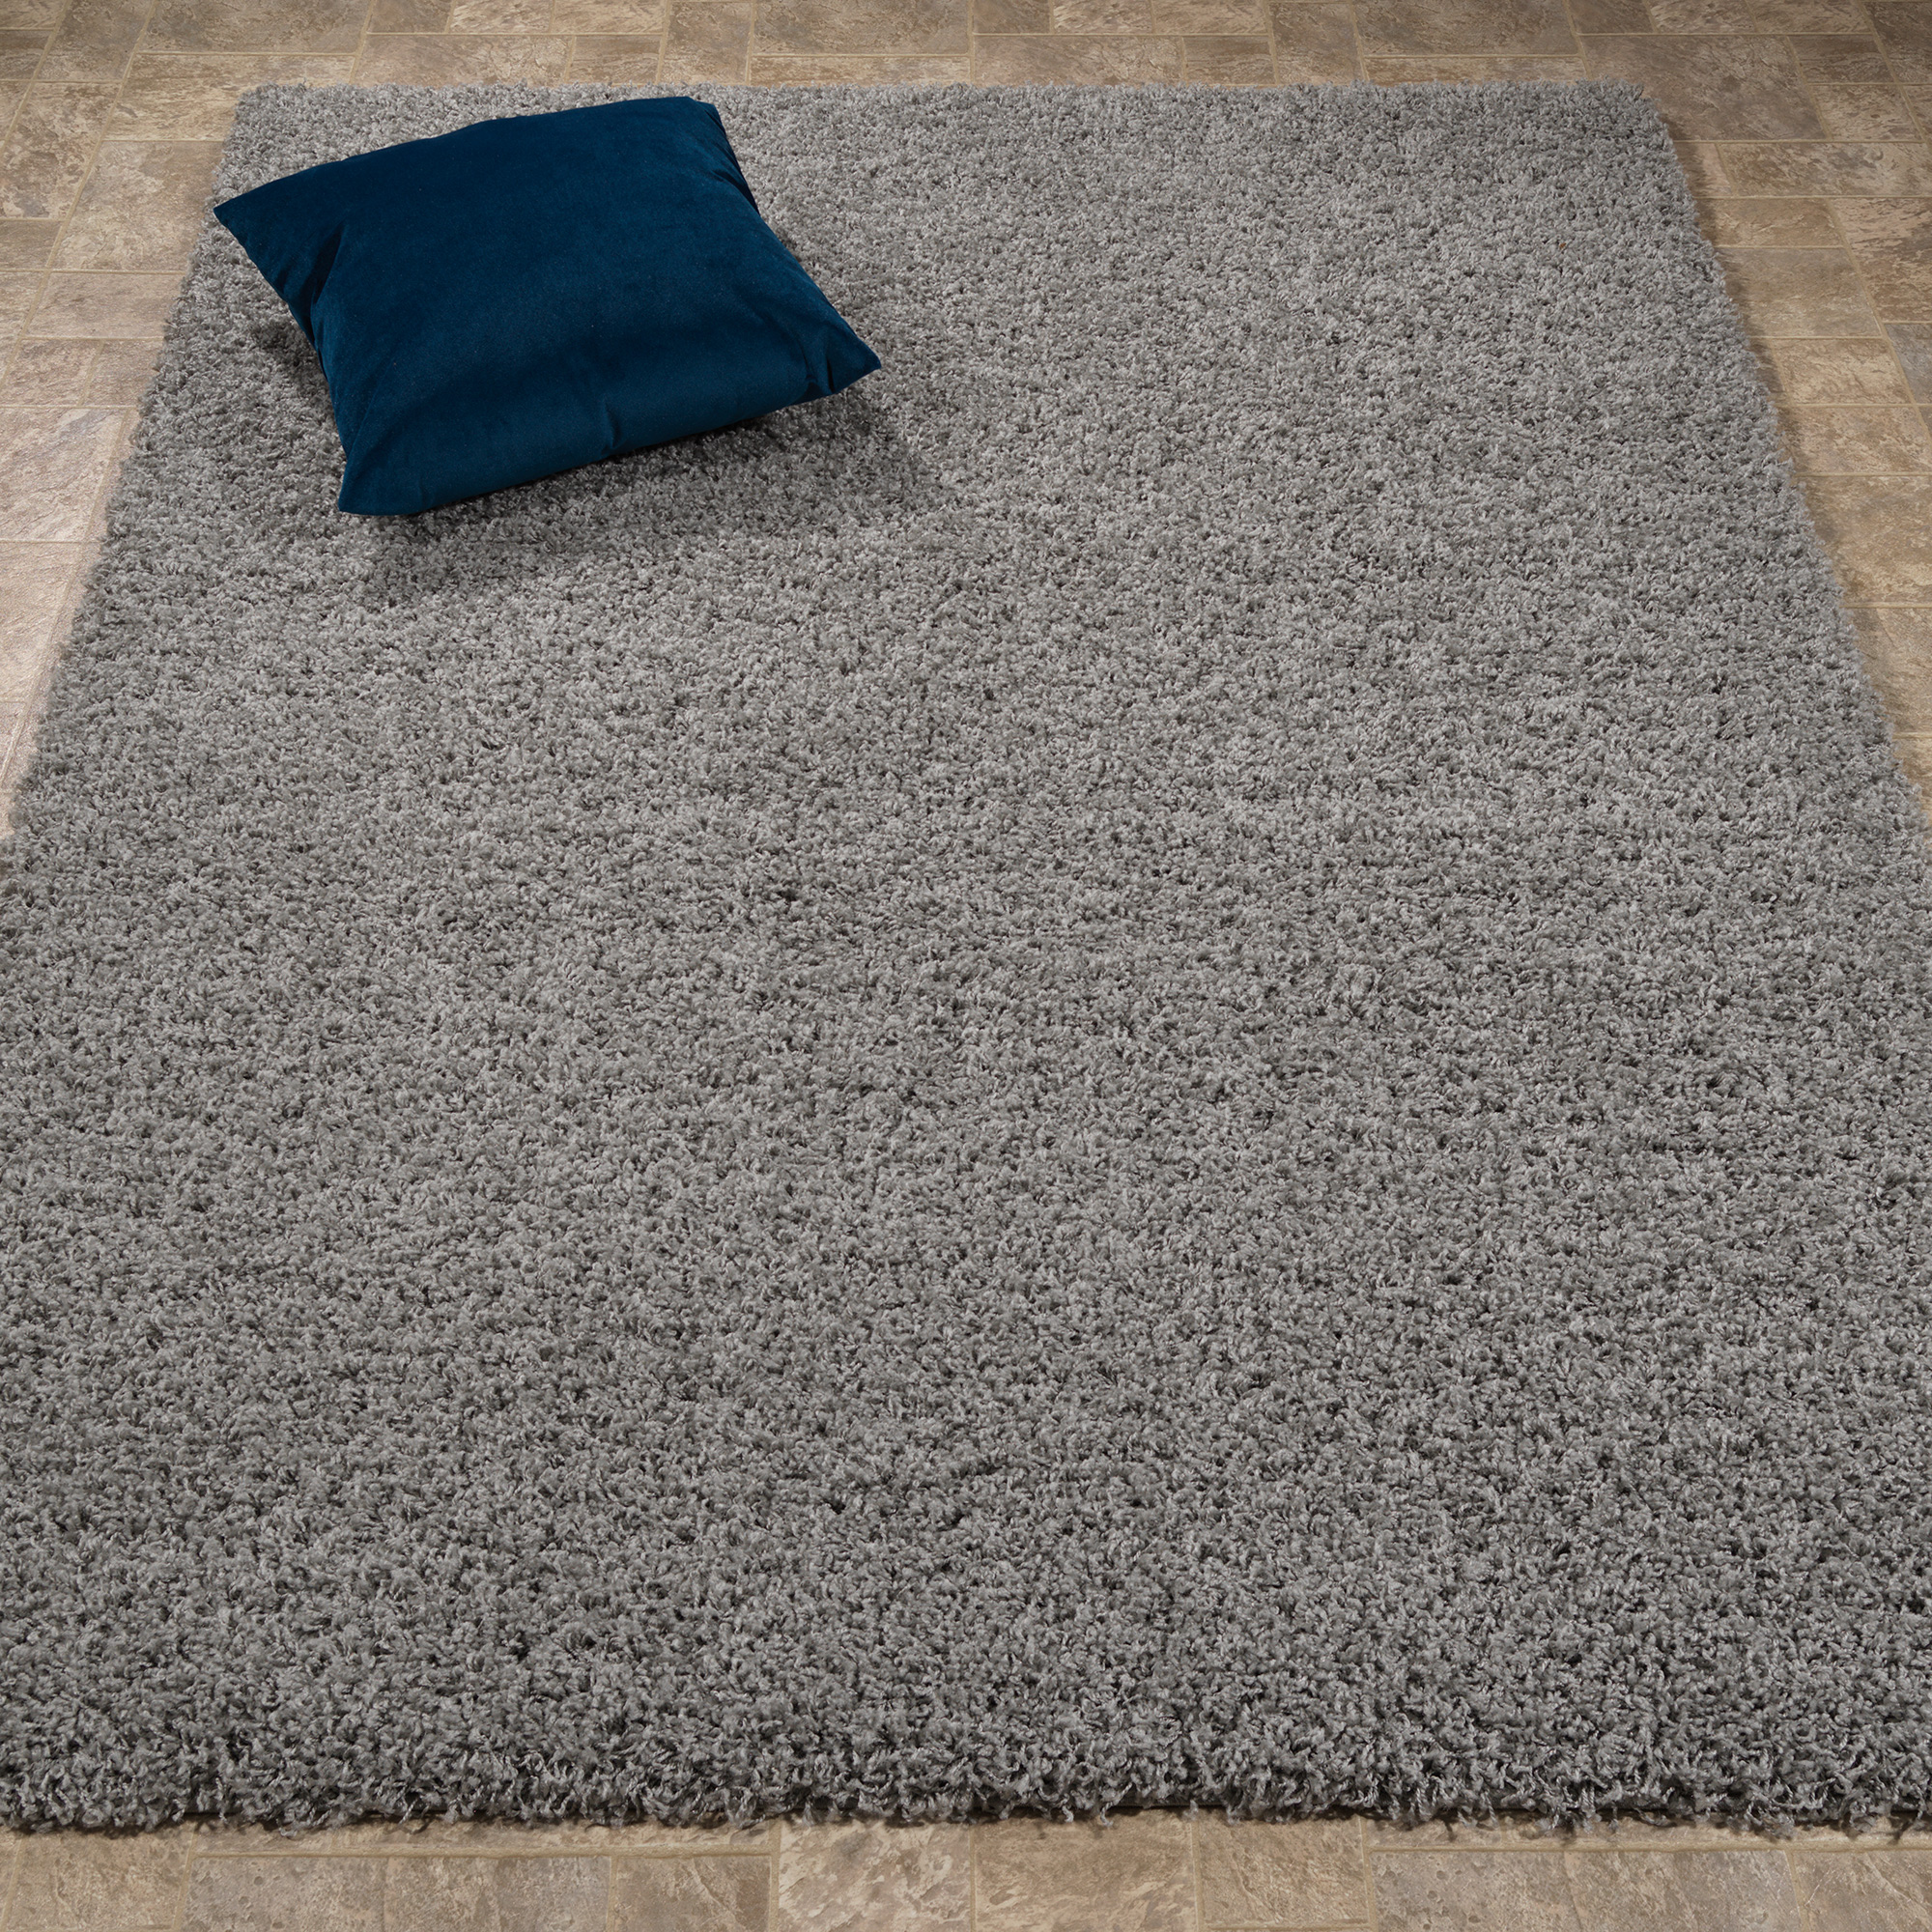 Berrnour Home Berrland Collection Solid Plush Soft Shaggy Shag Living room Area or Runner Rugs